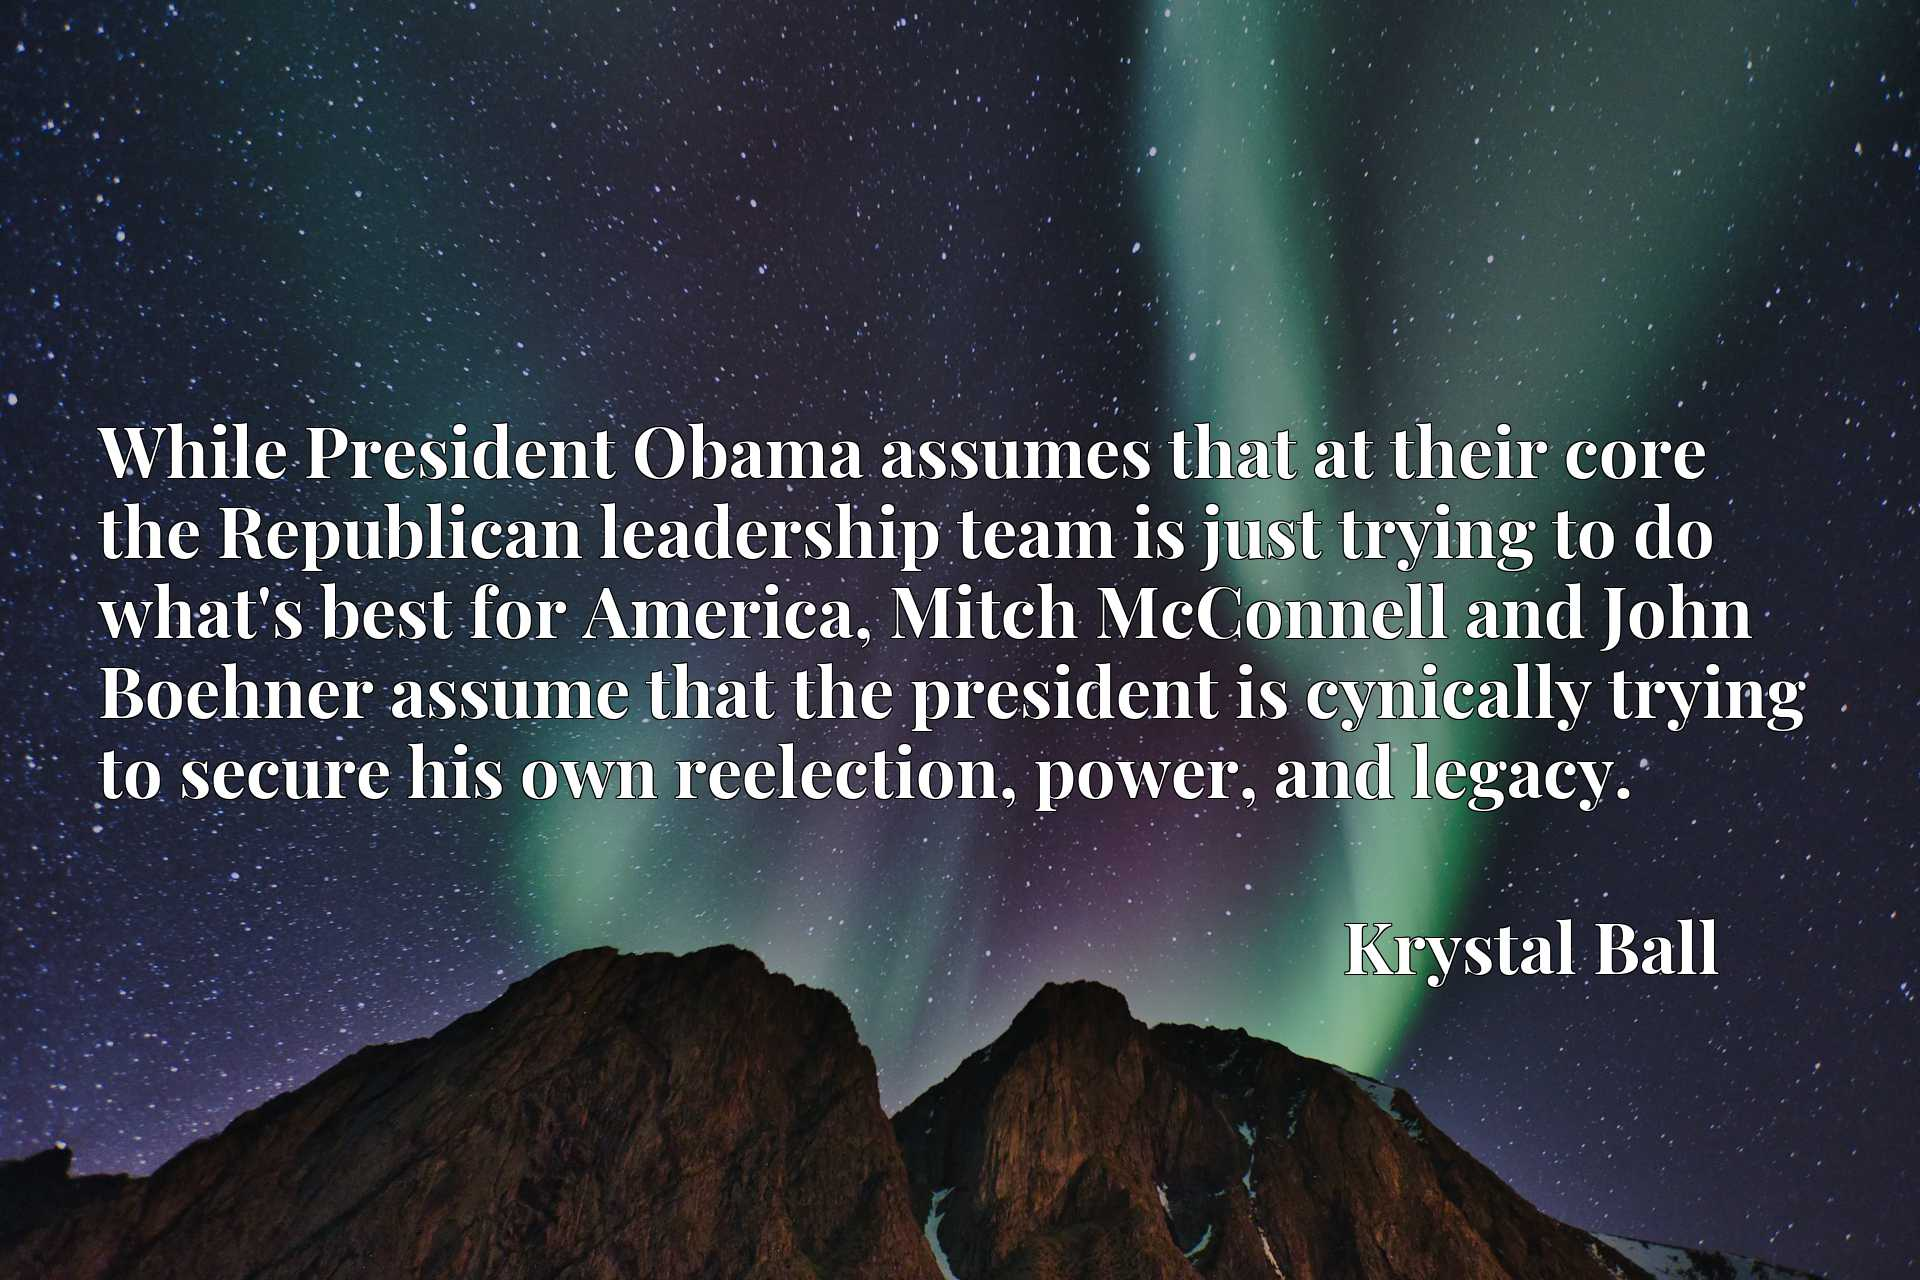 Quote Picture :While President Obama assumes that at their core the Republican leadership team is just trying to do what's best for America, Mitch McConnell and John Boehner assume that the president is cynically trying to secure his own reelection, power, and legacy.